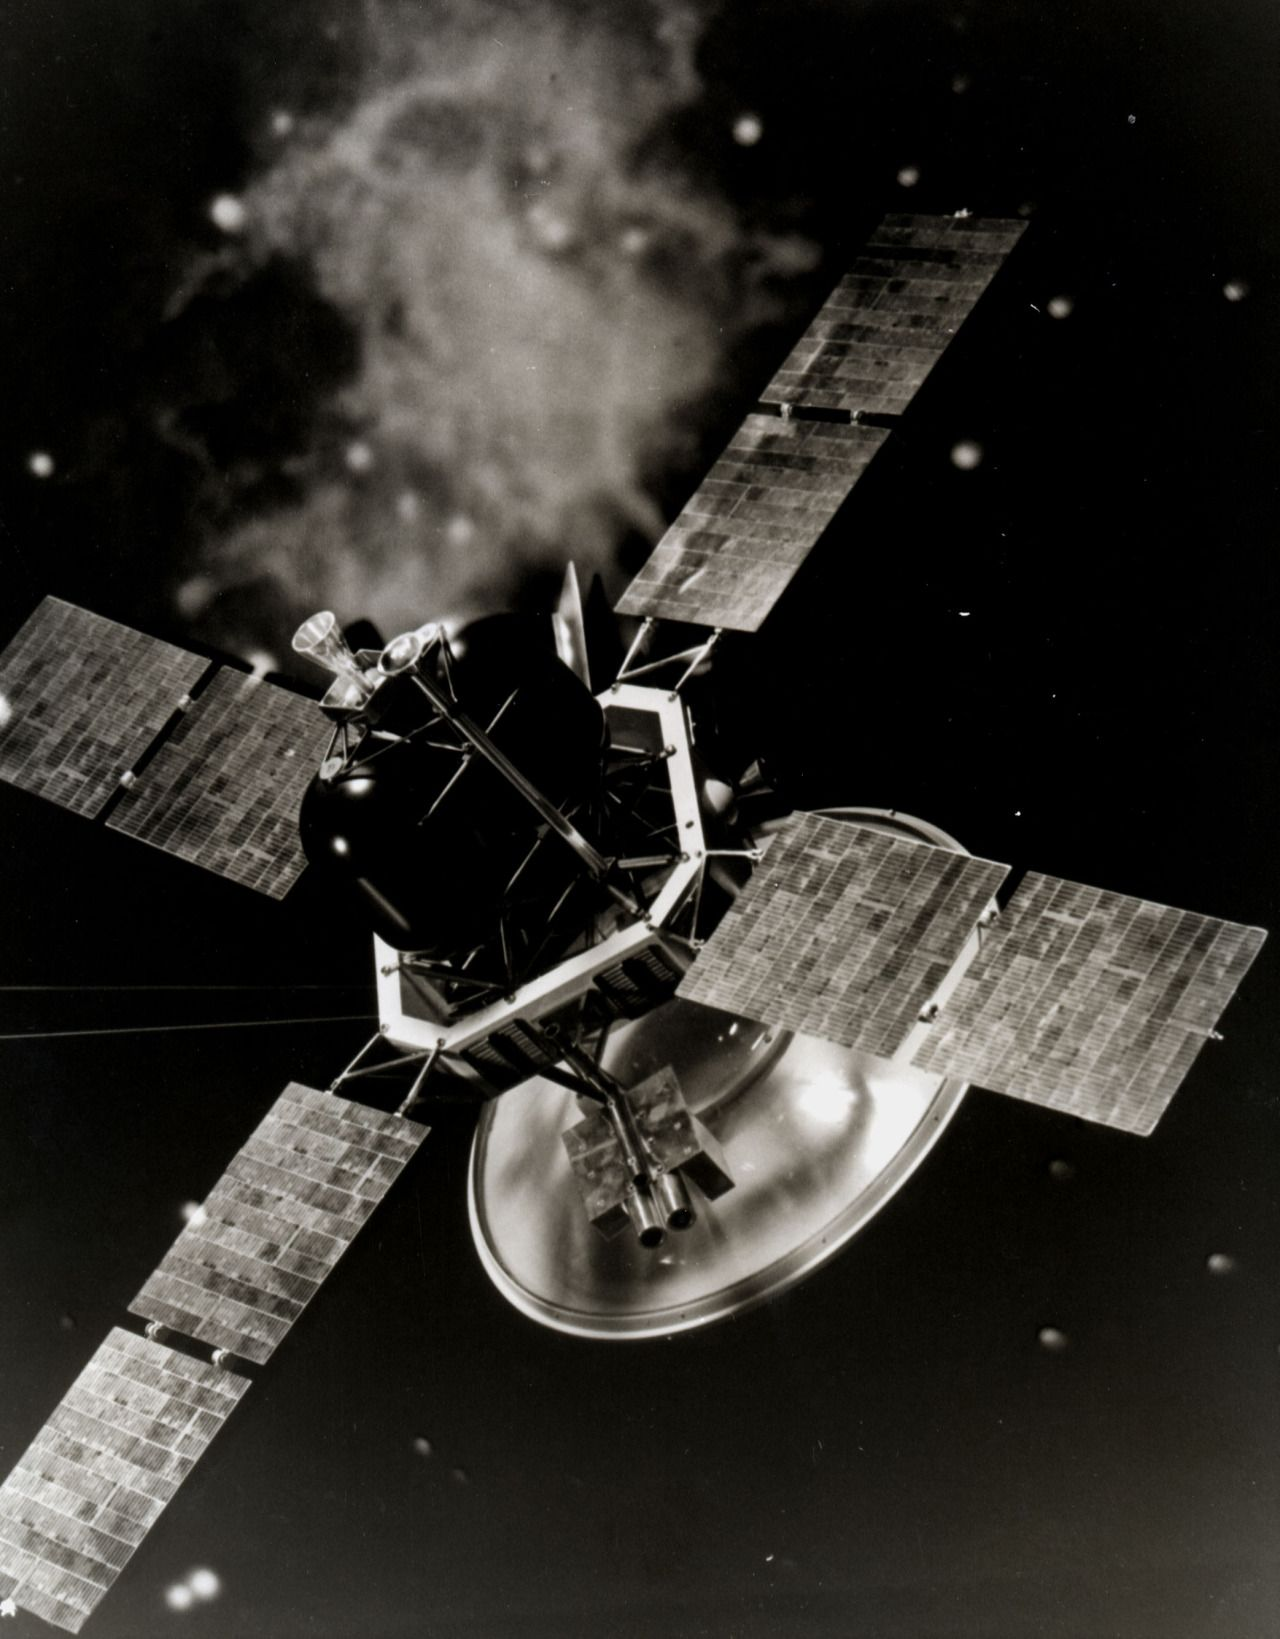 viking space probes all - photo #16